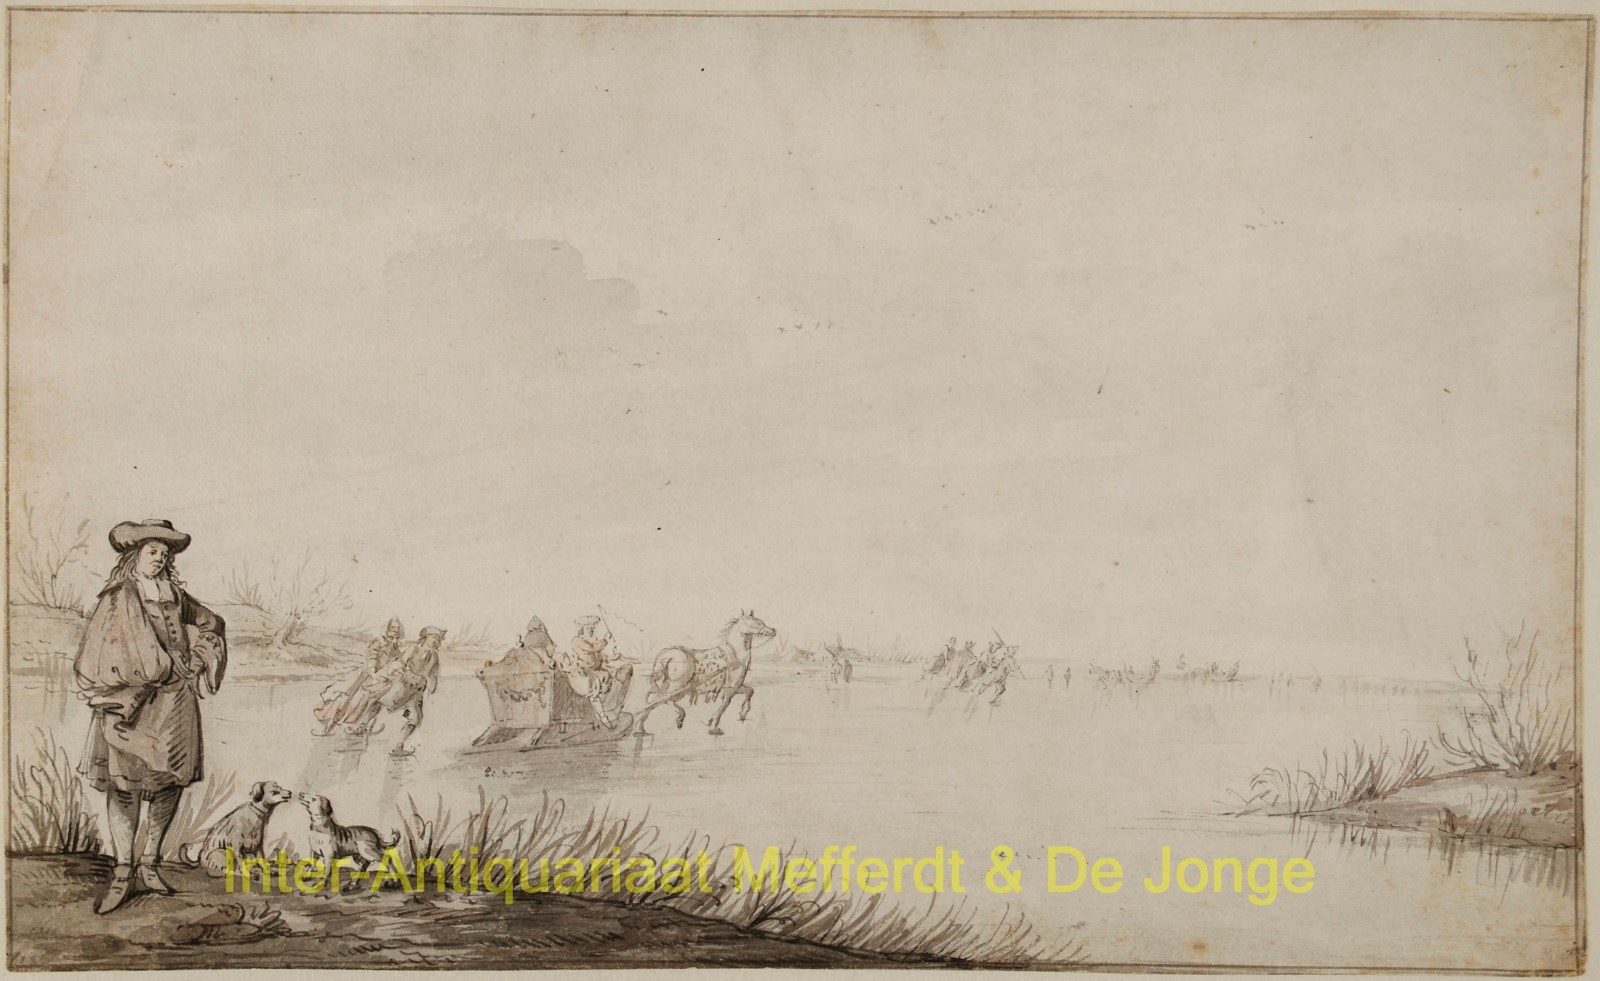 Grasdorp, Gerrit - Dutch winter scene, ice skating